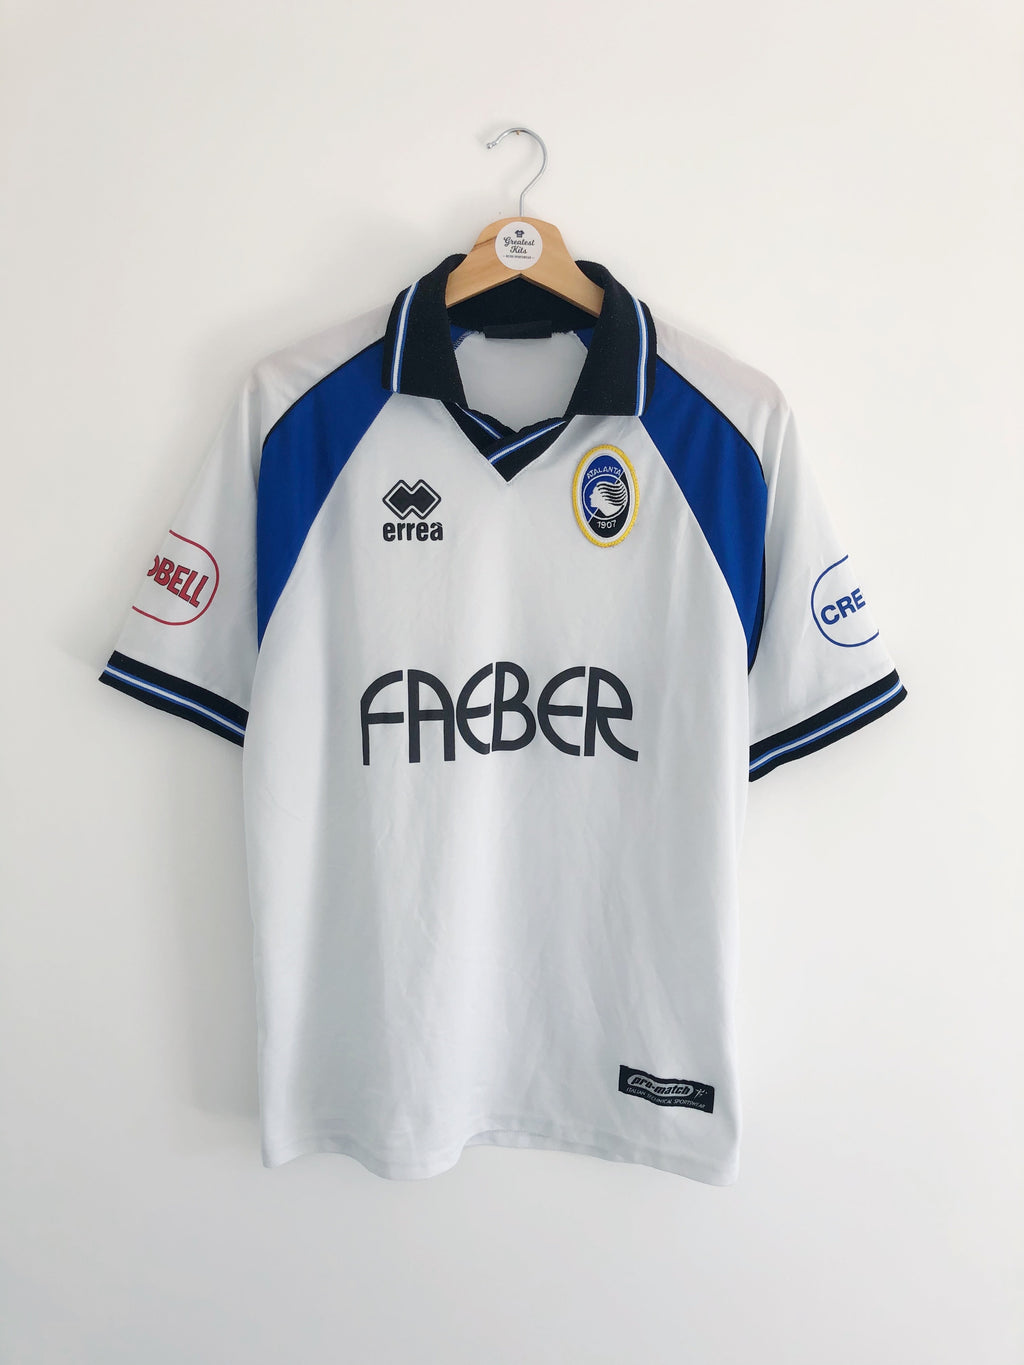 2010/11 Atalanta *Prototype* Away Shirt (L) 7.5/10